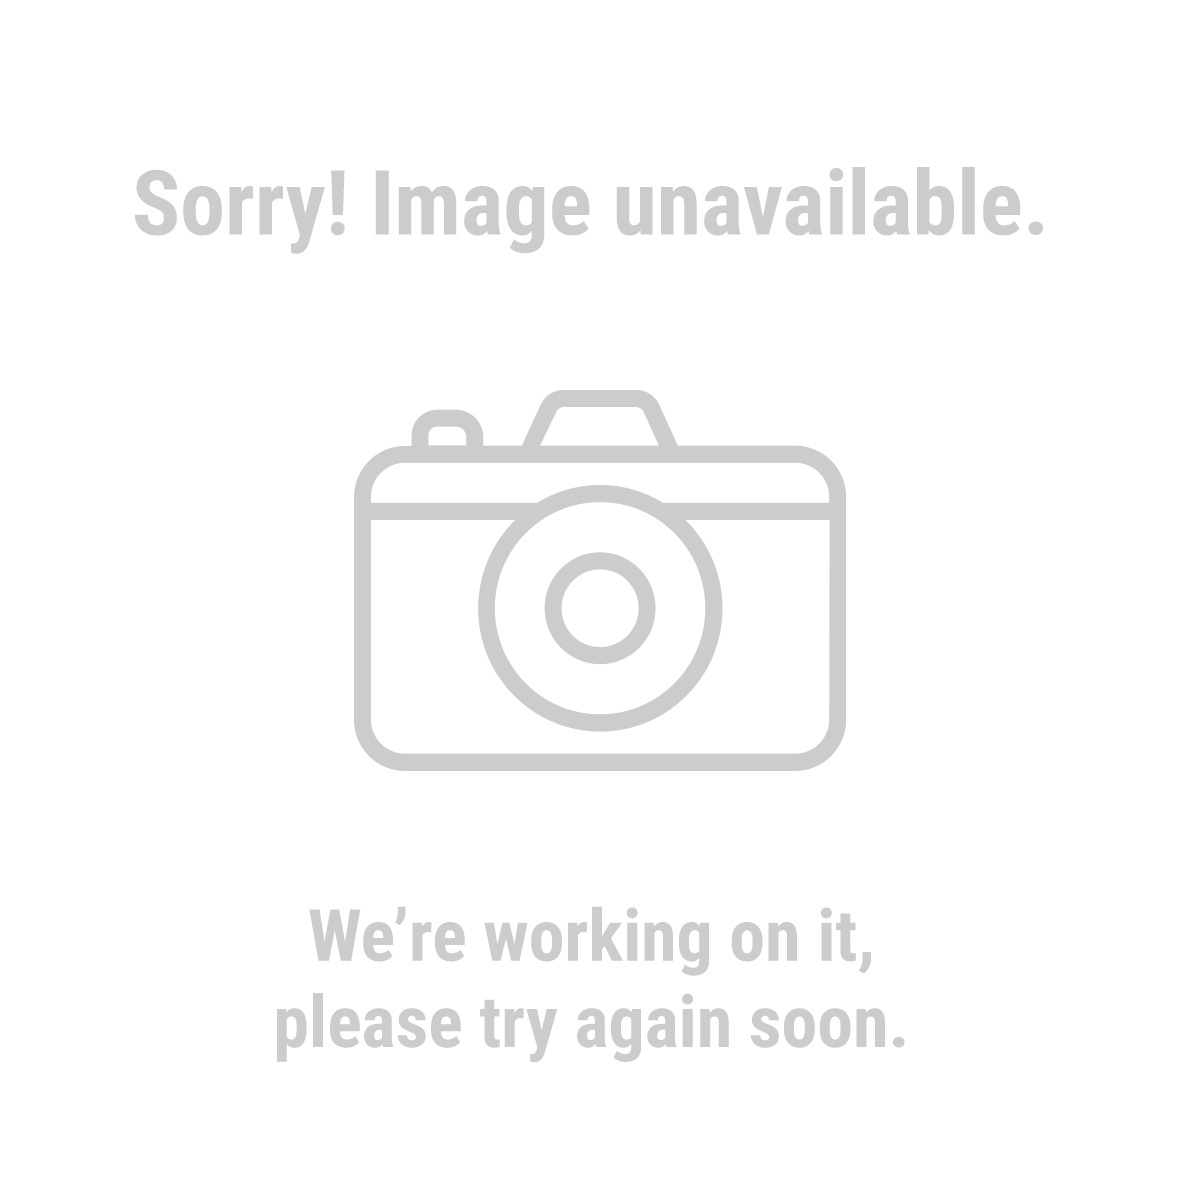 HARDY 61987 Polypropylene Coated Cotton Knit Work Gloves 6 Pr